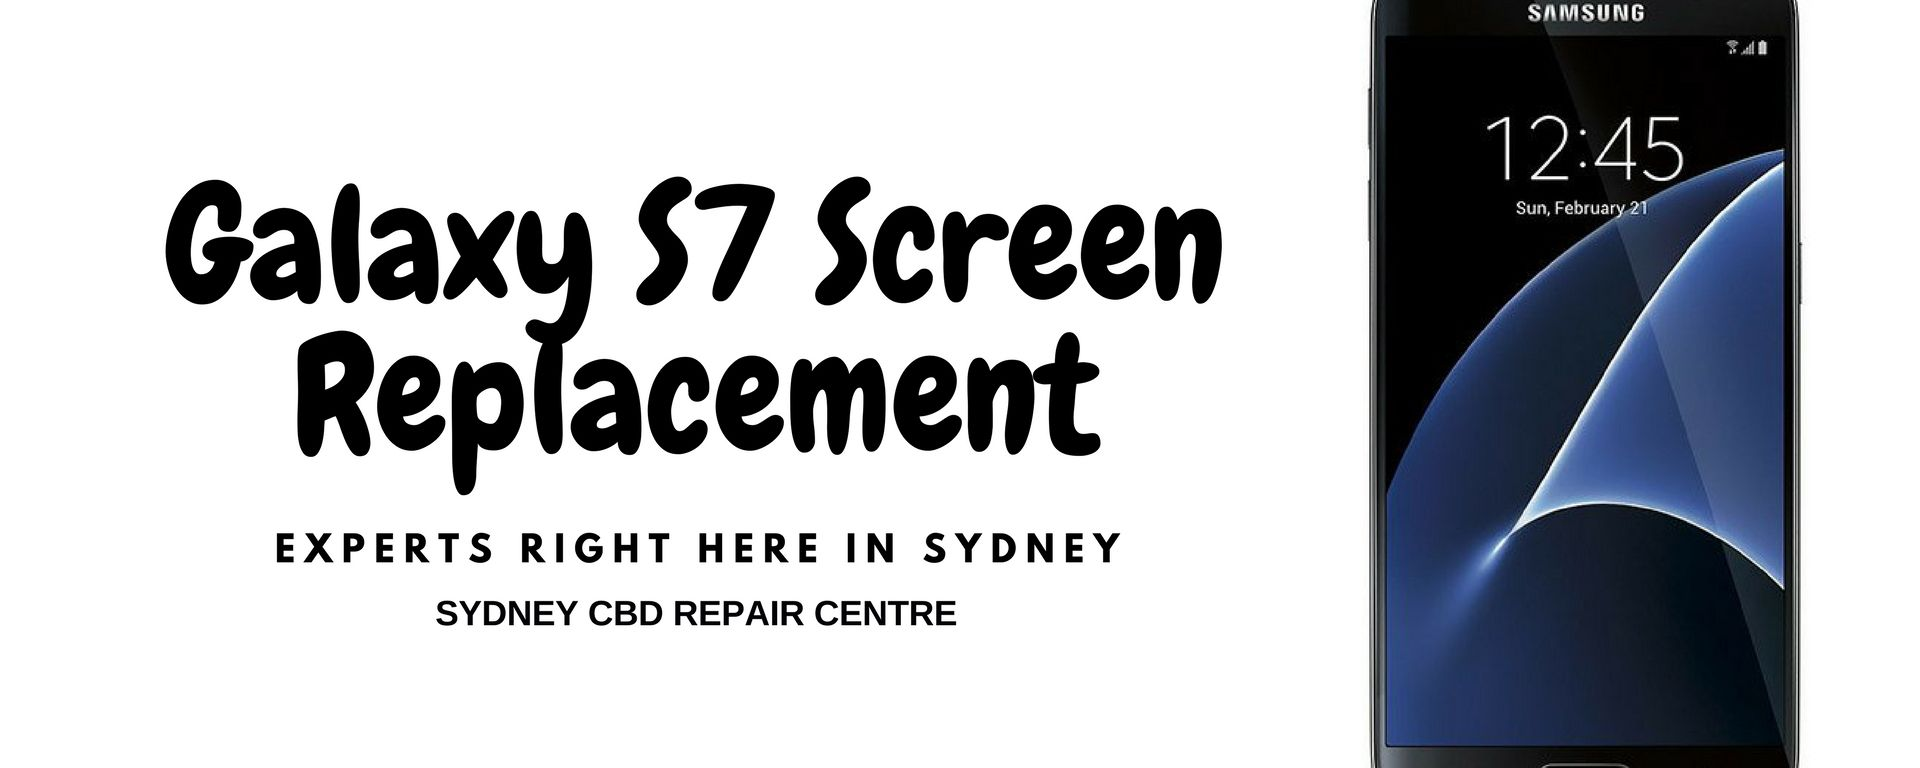 Galaxy S7 Screen Replacement Experts Right Here in Sydney